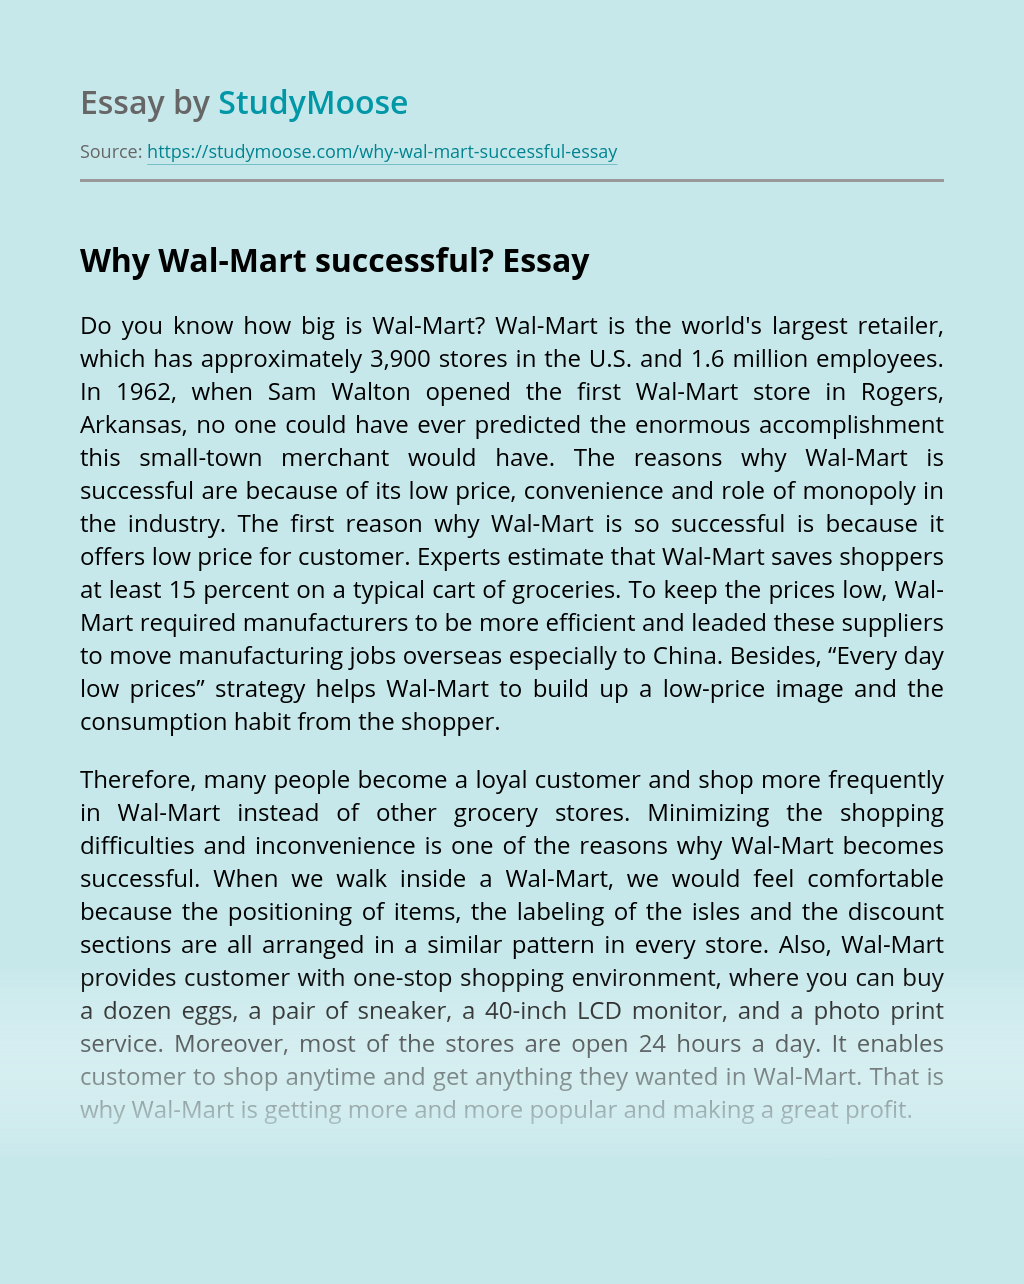 Why Wal-Mart successful?